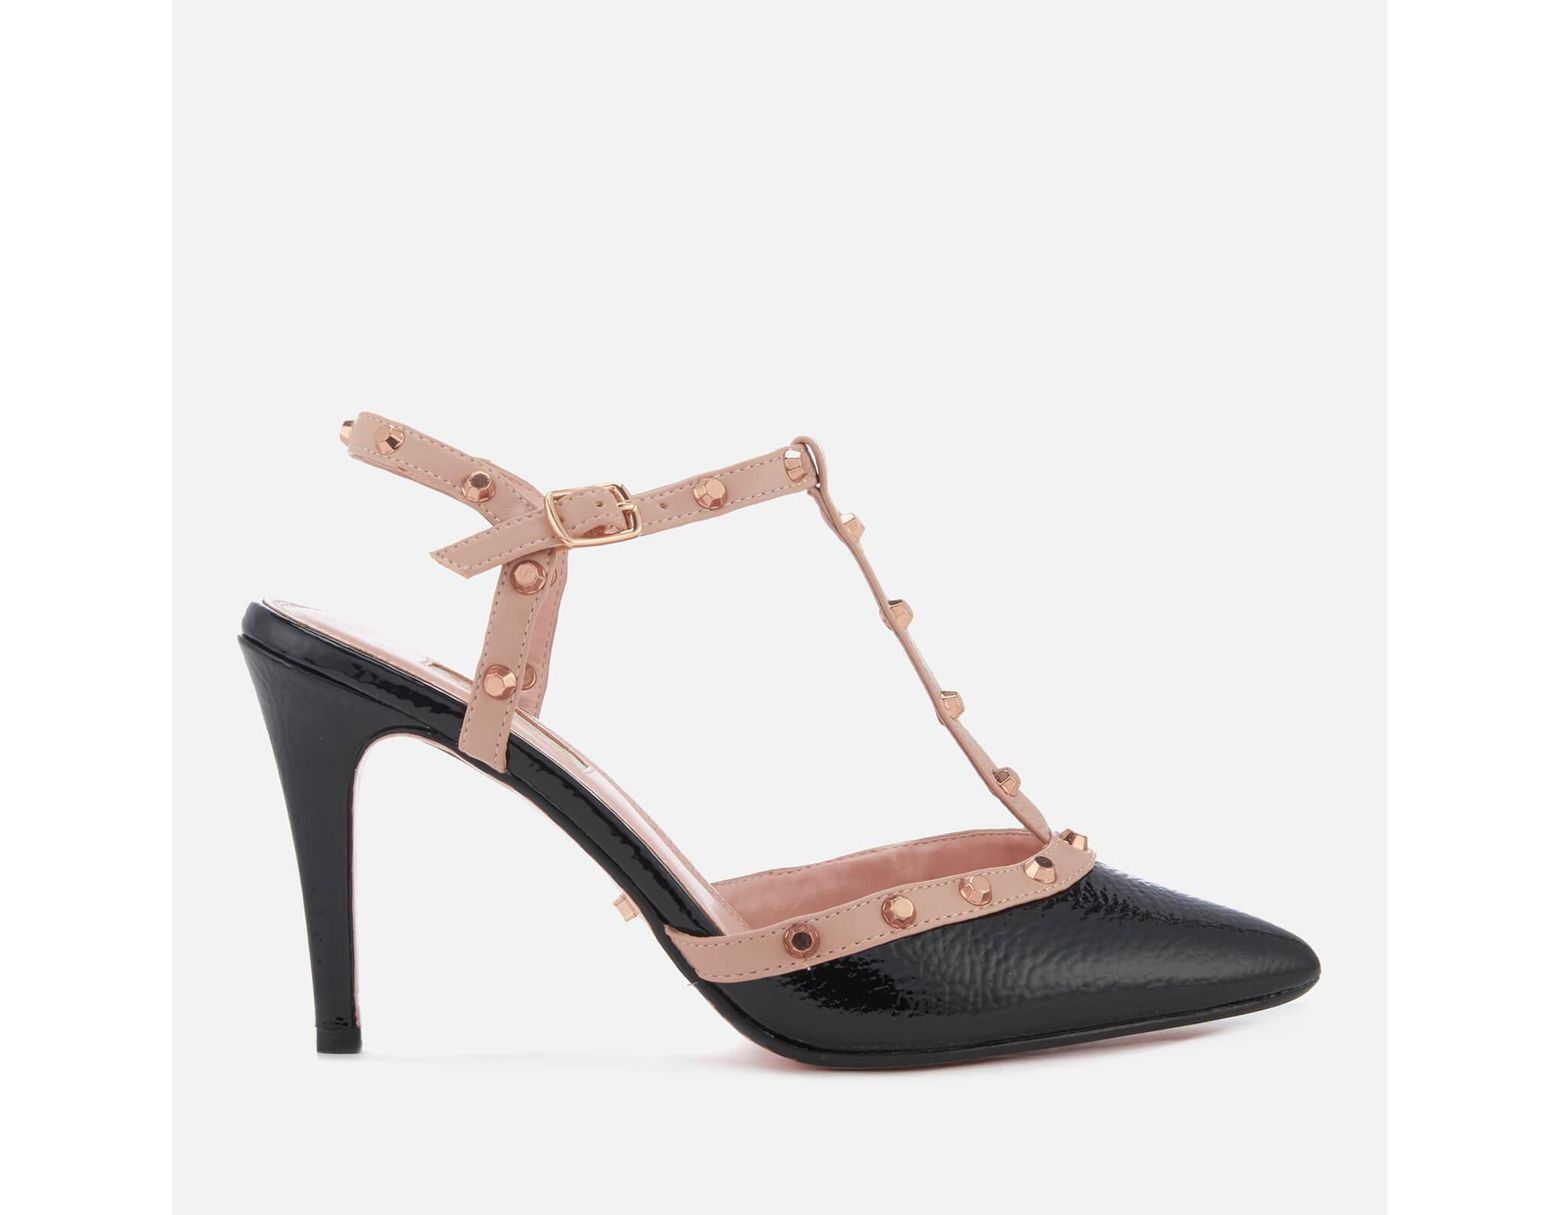 3c80b1560 Dune Catelyn Leather Court Shoes in Black - Save 6% - Lyst